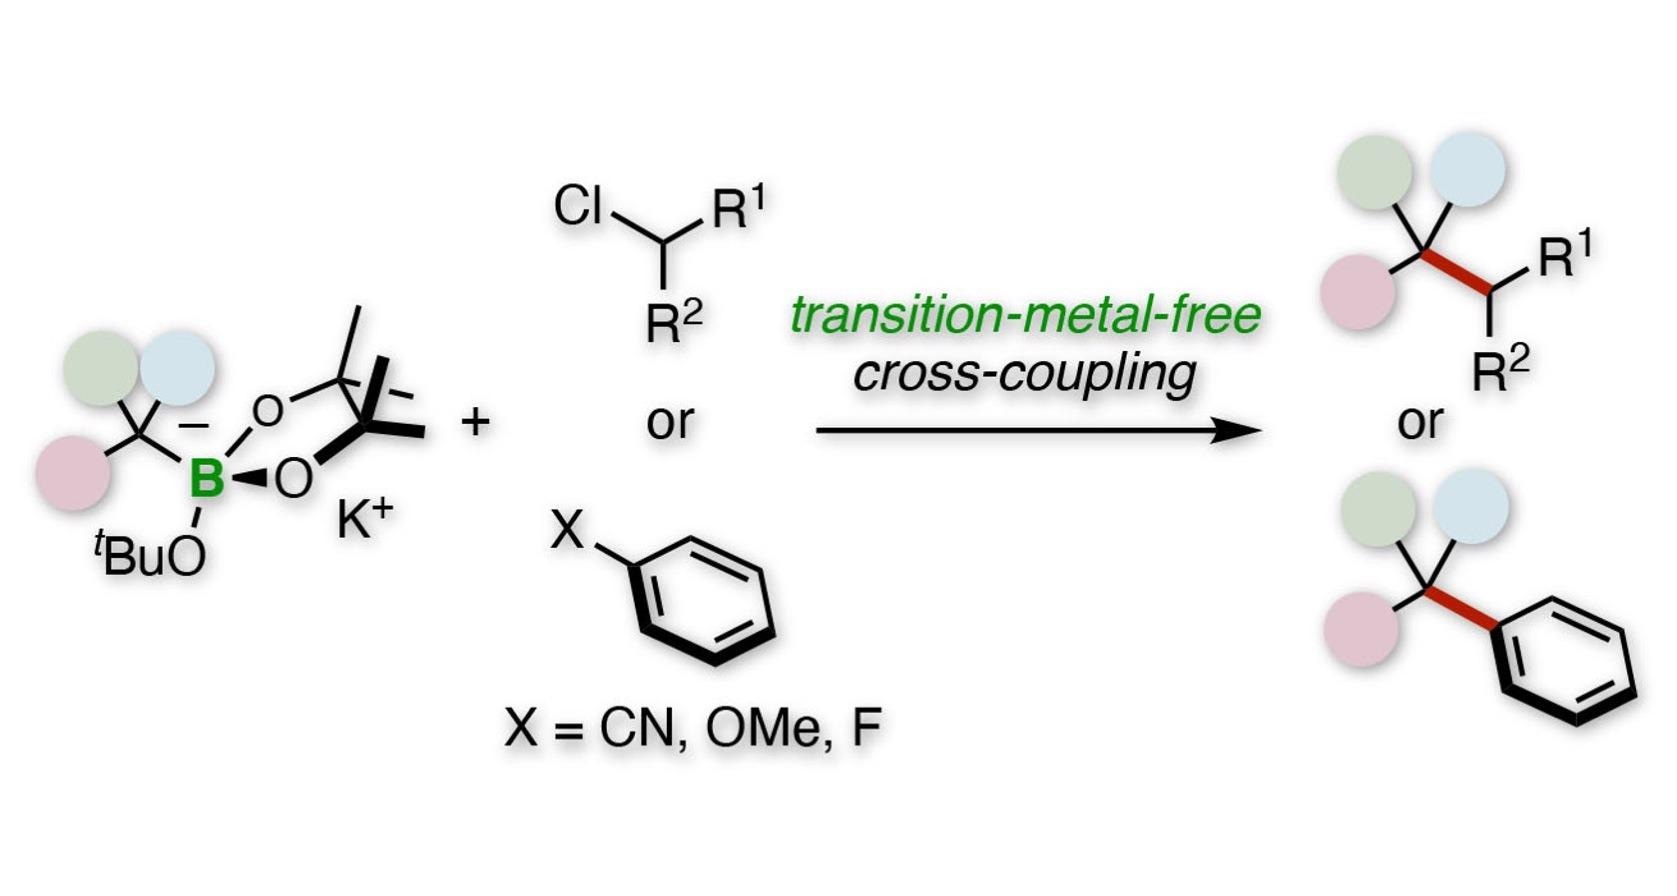 Tertiary alkylative cross-coupling of alkyl or aryl electrophiles.